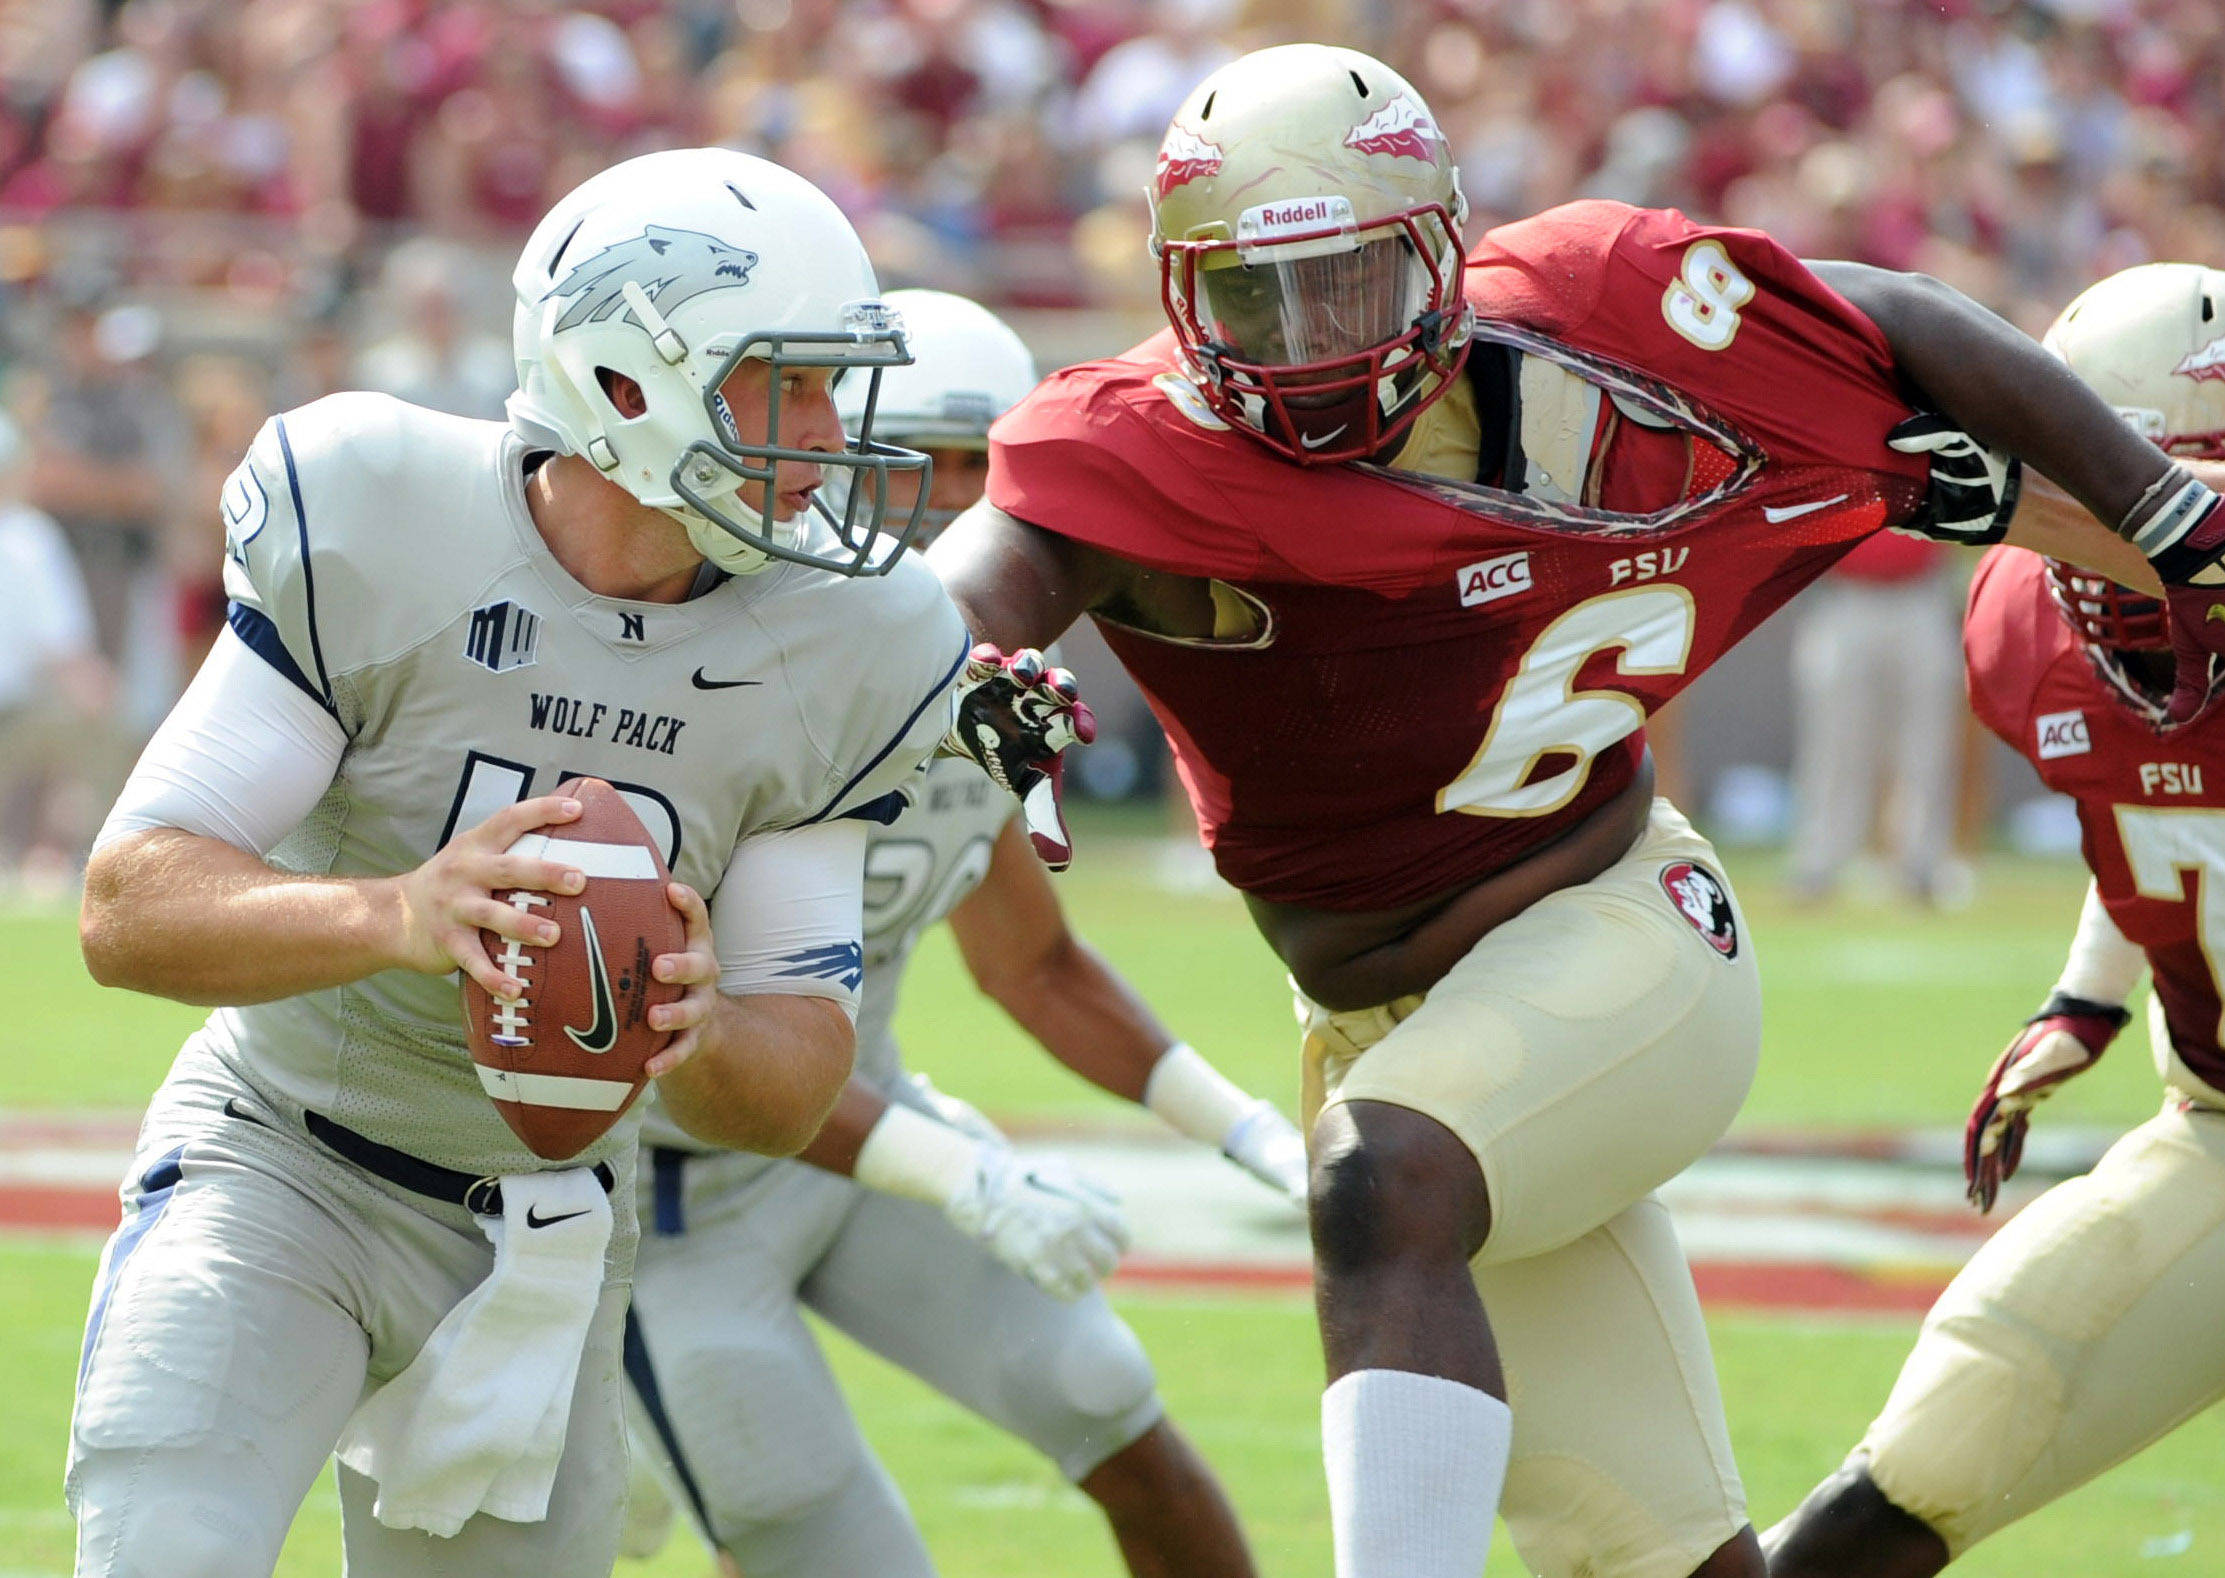 Sep 14, 2013; Tallahassee, FL, USA; Nevada Wolf Pack quarterback Devin Combs (13) runs the ball as he is pressured by Florida State Seminoles defensive end Dan Hicks (6) during the first half of the game at Doak Campbell Stadium. Mandatory Credit: Melina Vastola-USA TODAY Sports